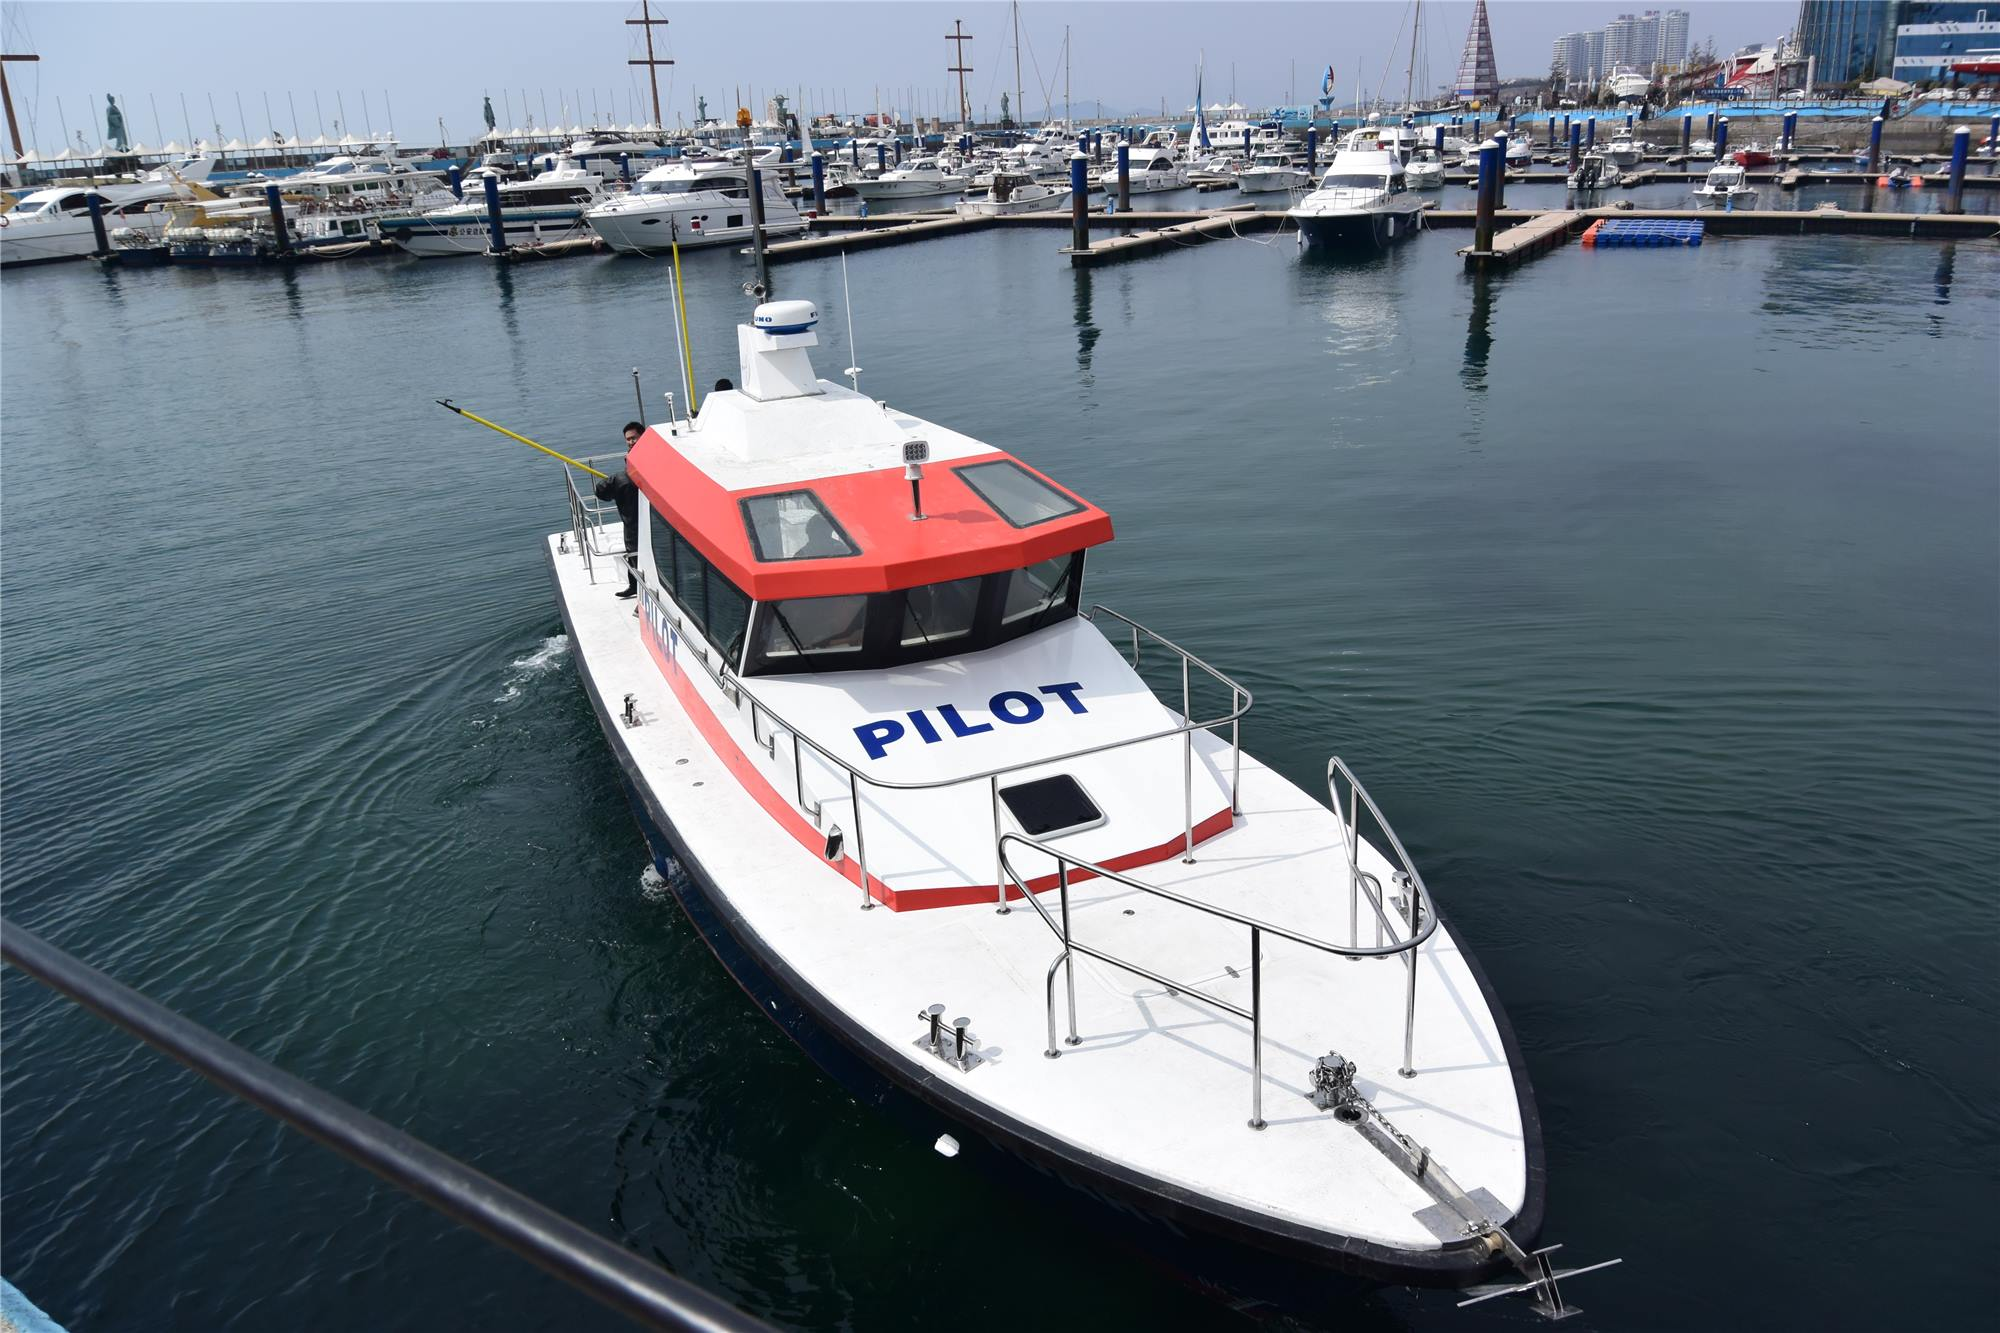 15m High Speed Pilot Patrol Boat for Sale